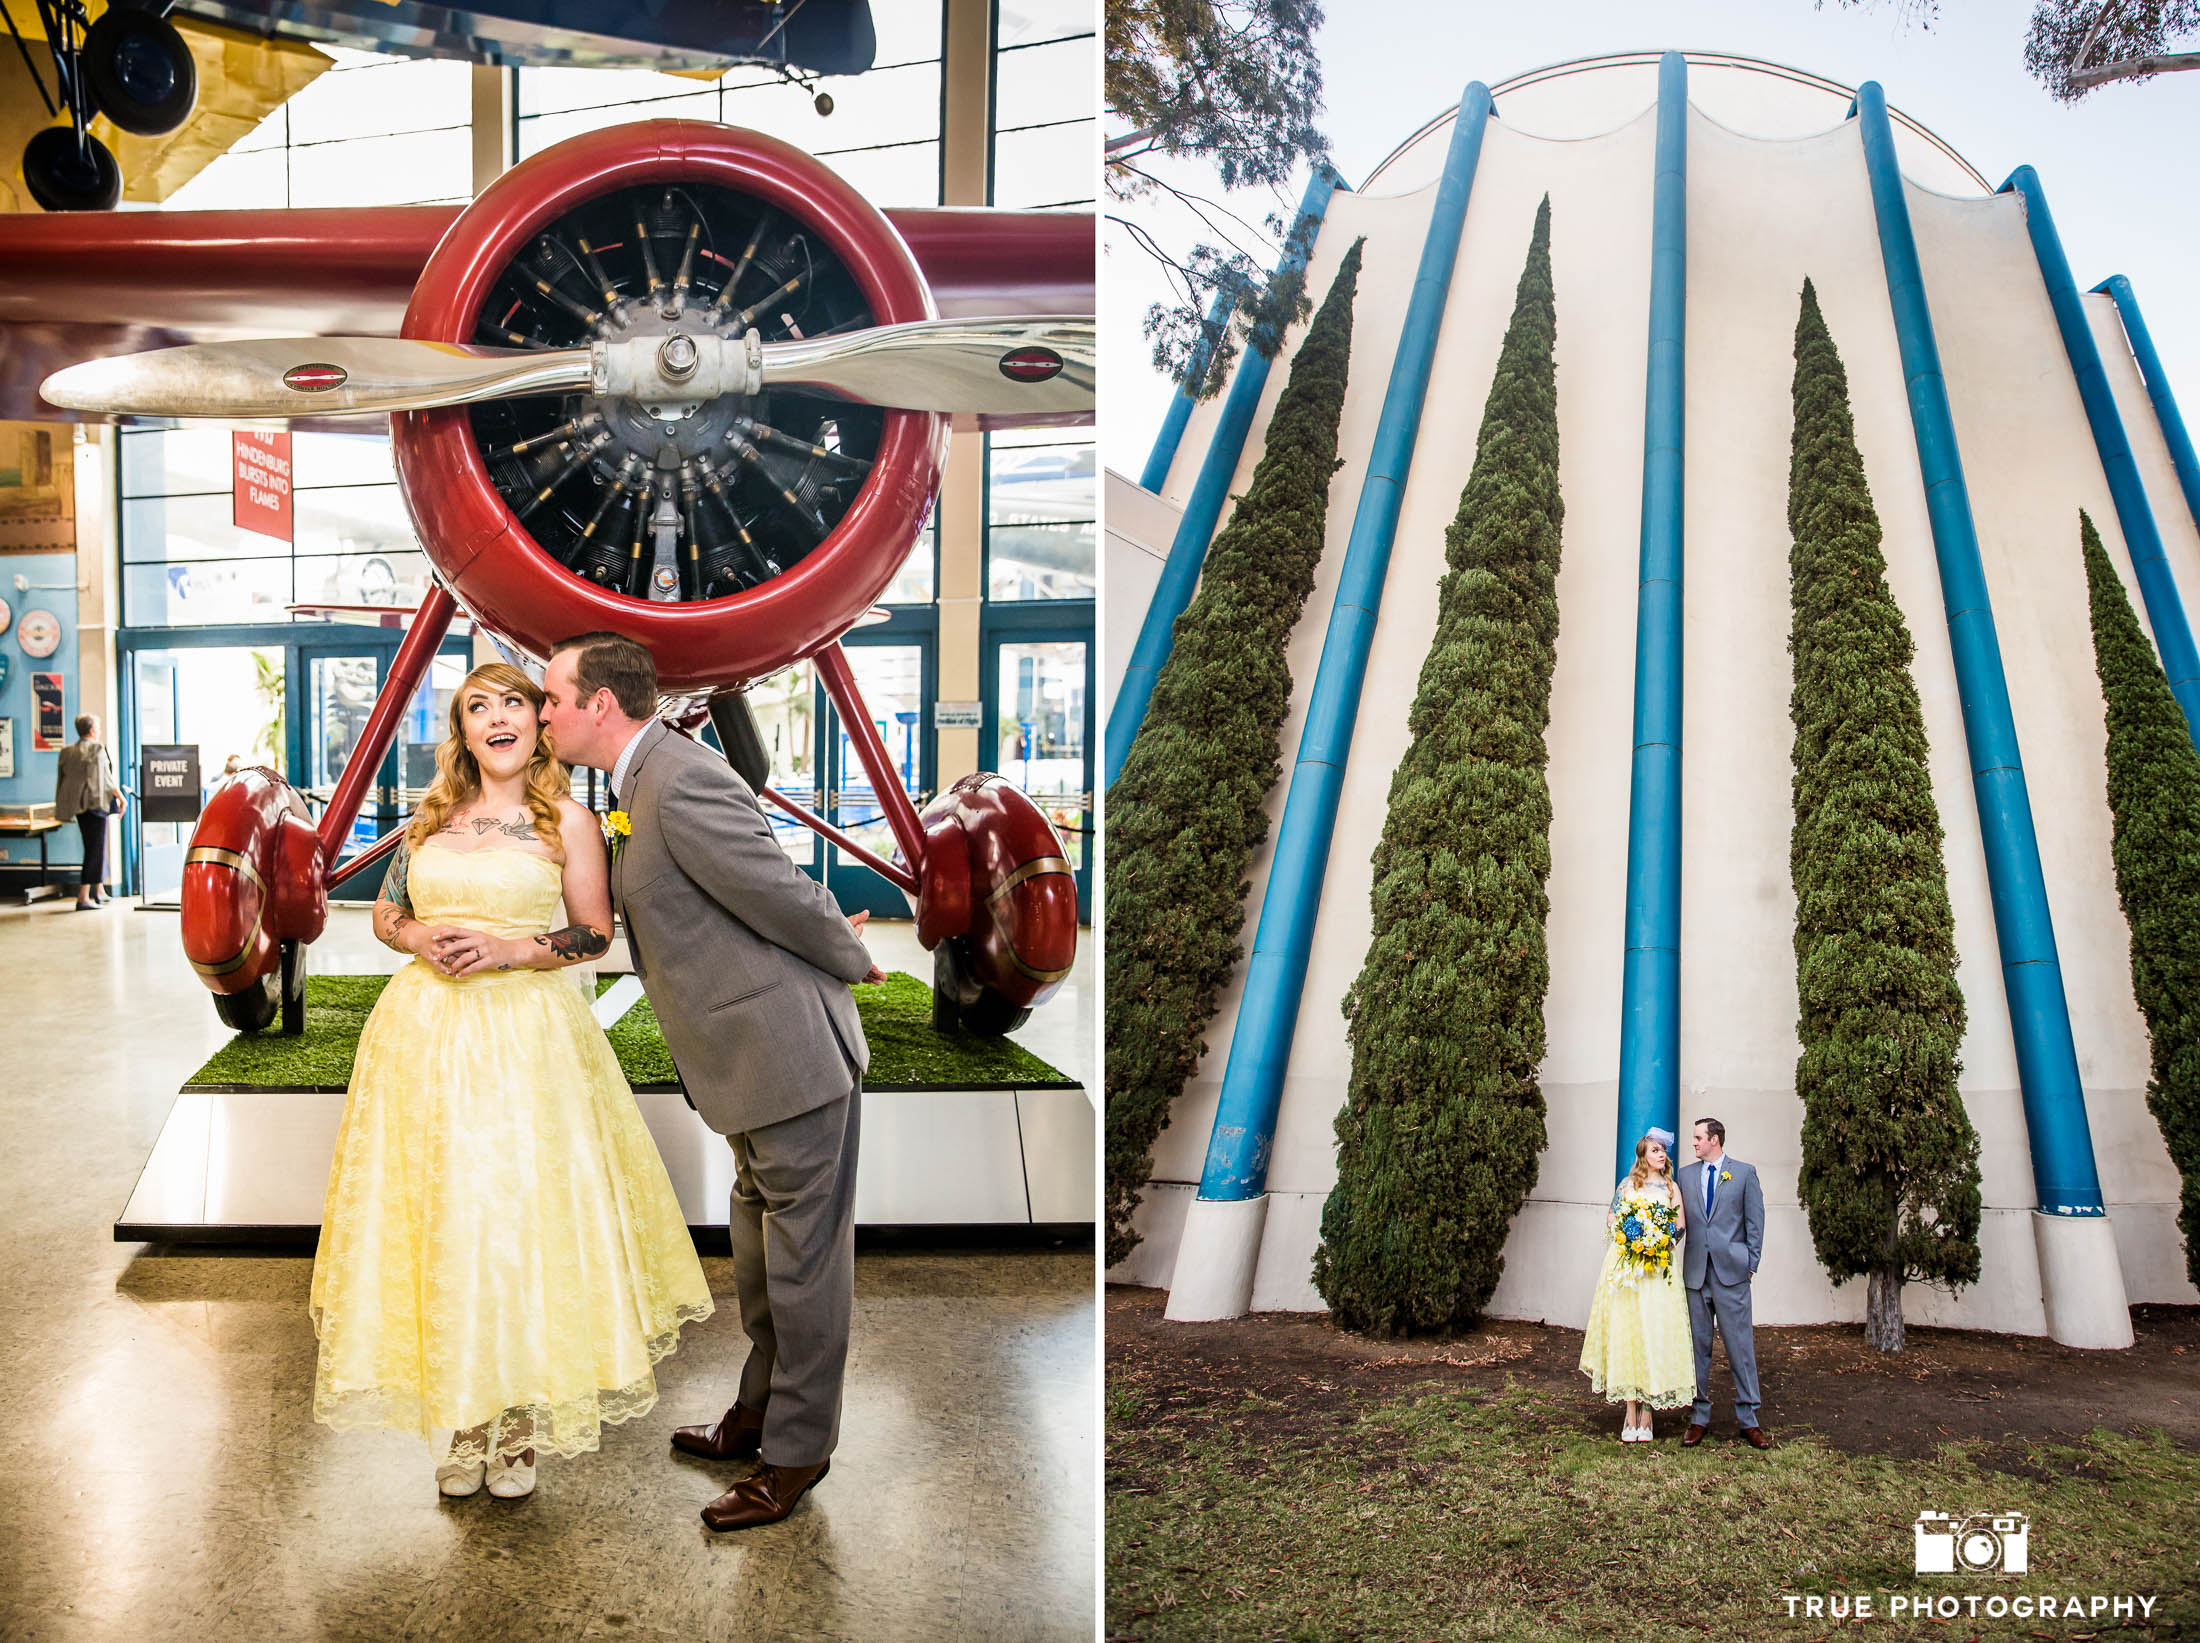 Bride and Groom pose in front of red plane at museum